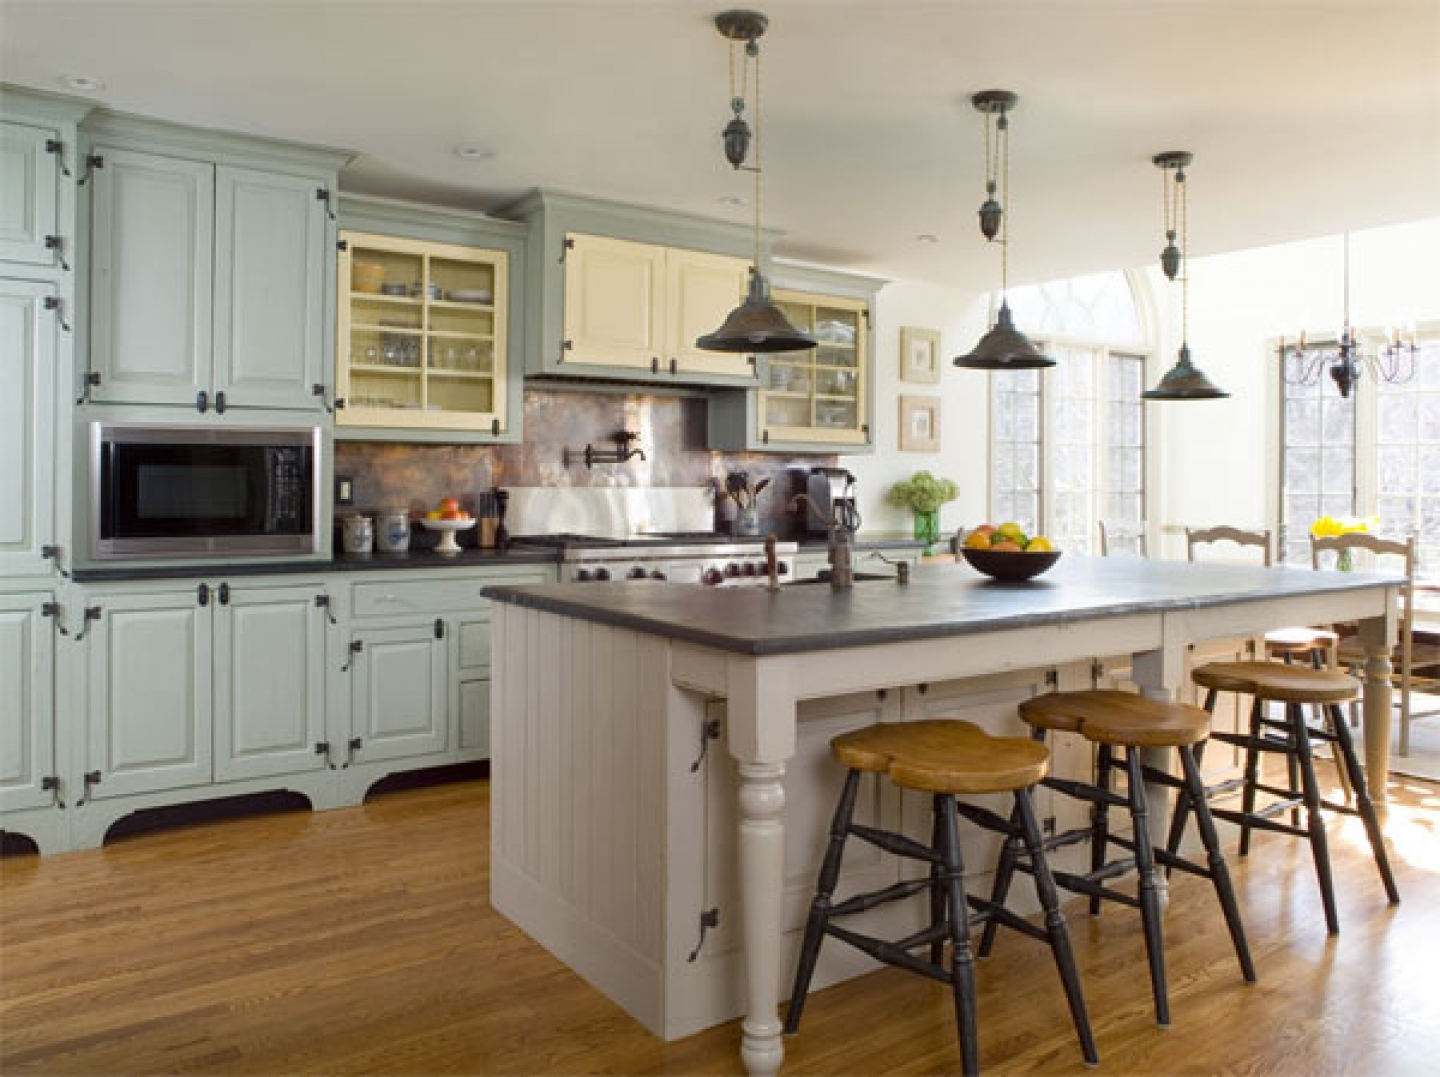 Country Kitchen Decor: Modern Kitchen With A Vintage Flair Pictures, Photos, And